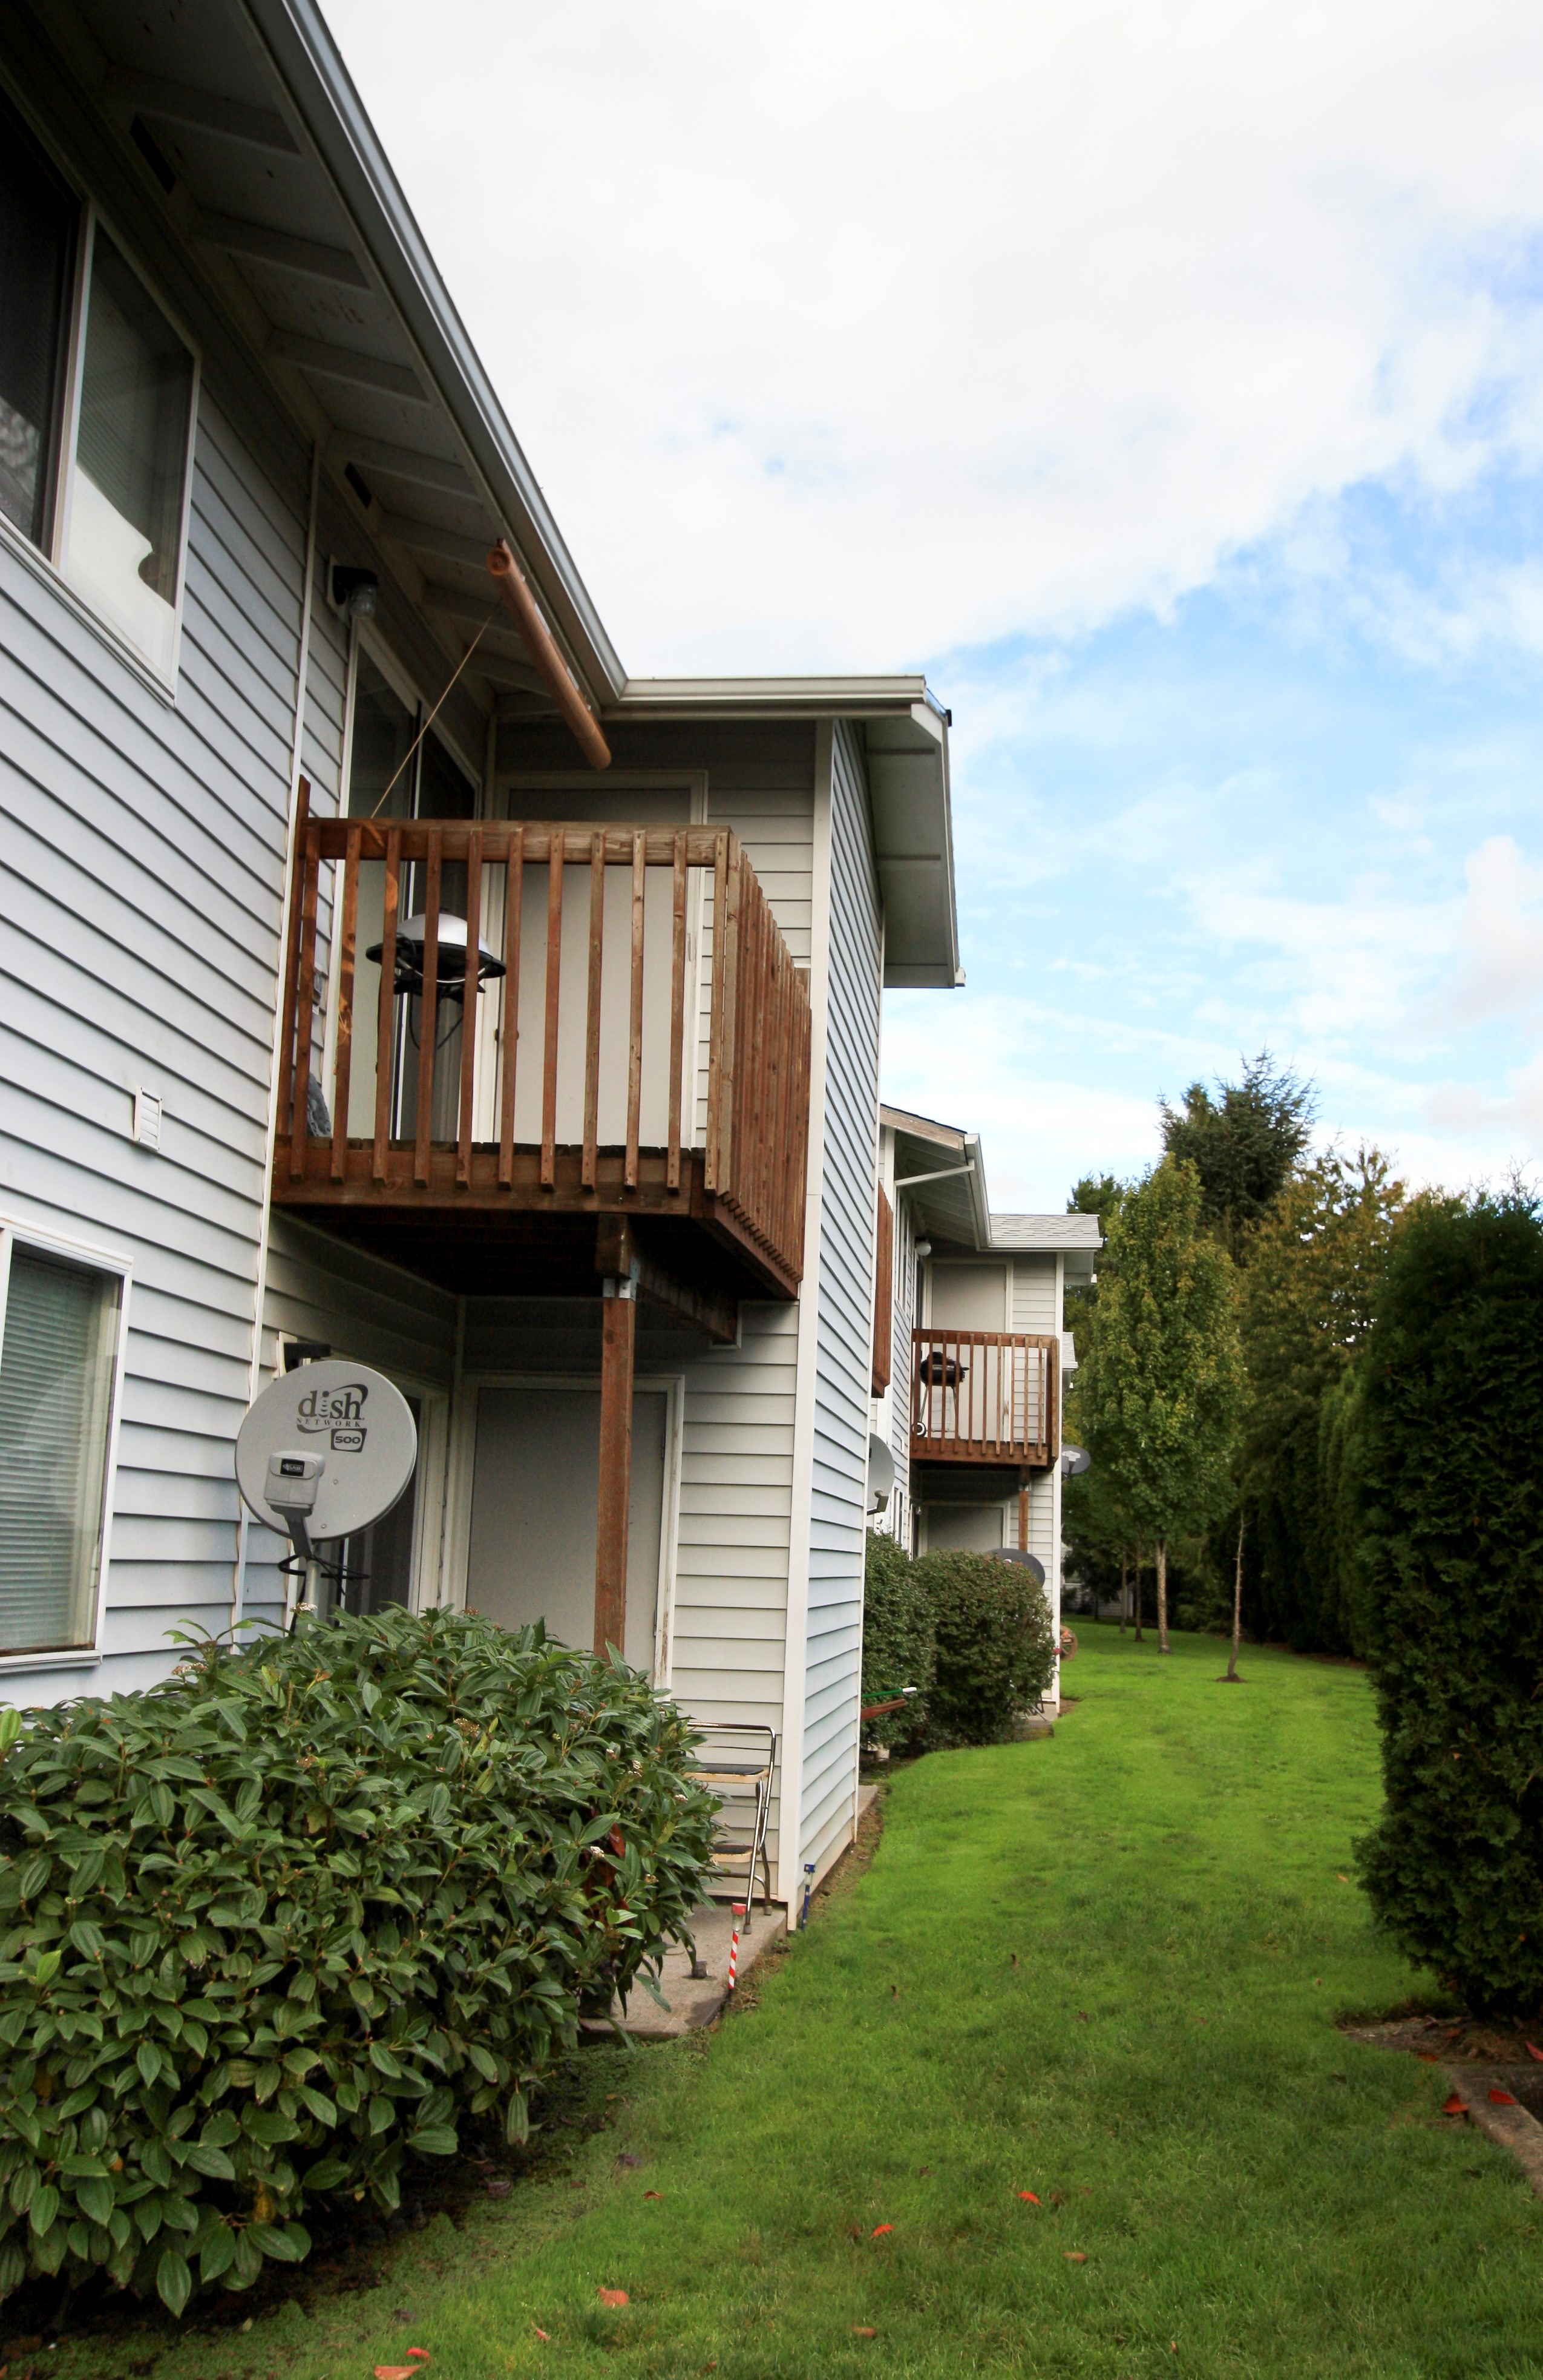 Orchard View Apartments reviews | 138 Bayview Way NE - Salem OR